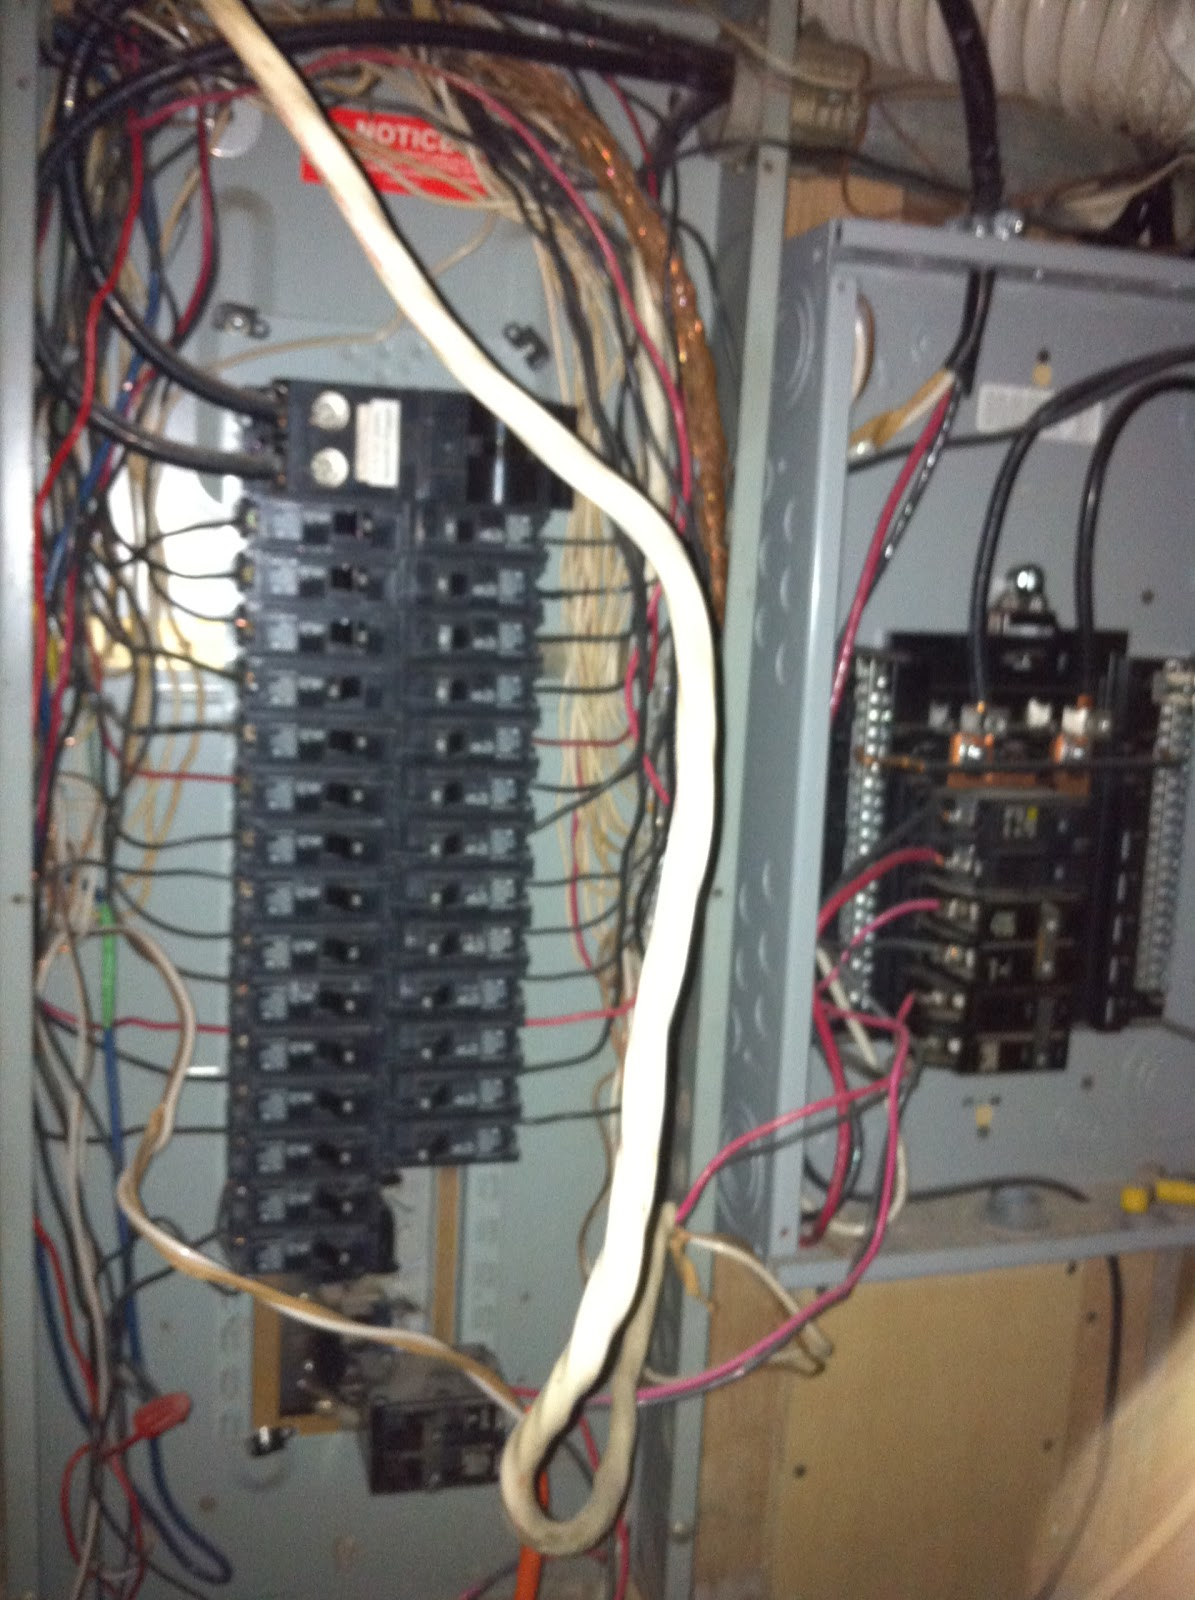 gen3 electric 215 352 5963 august 2011 rh philadelphia electricians how to com DIY Electrical Wiring Electrical Wiring Symbols